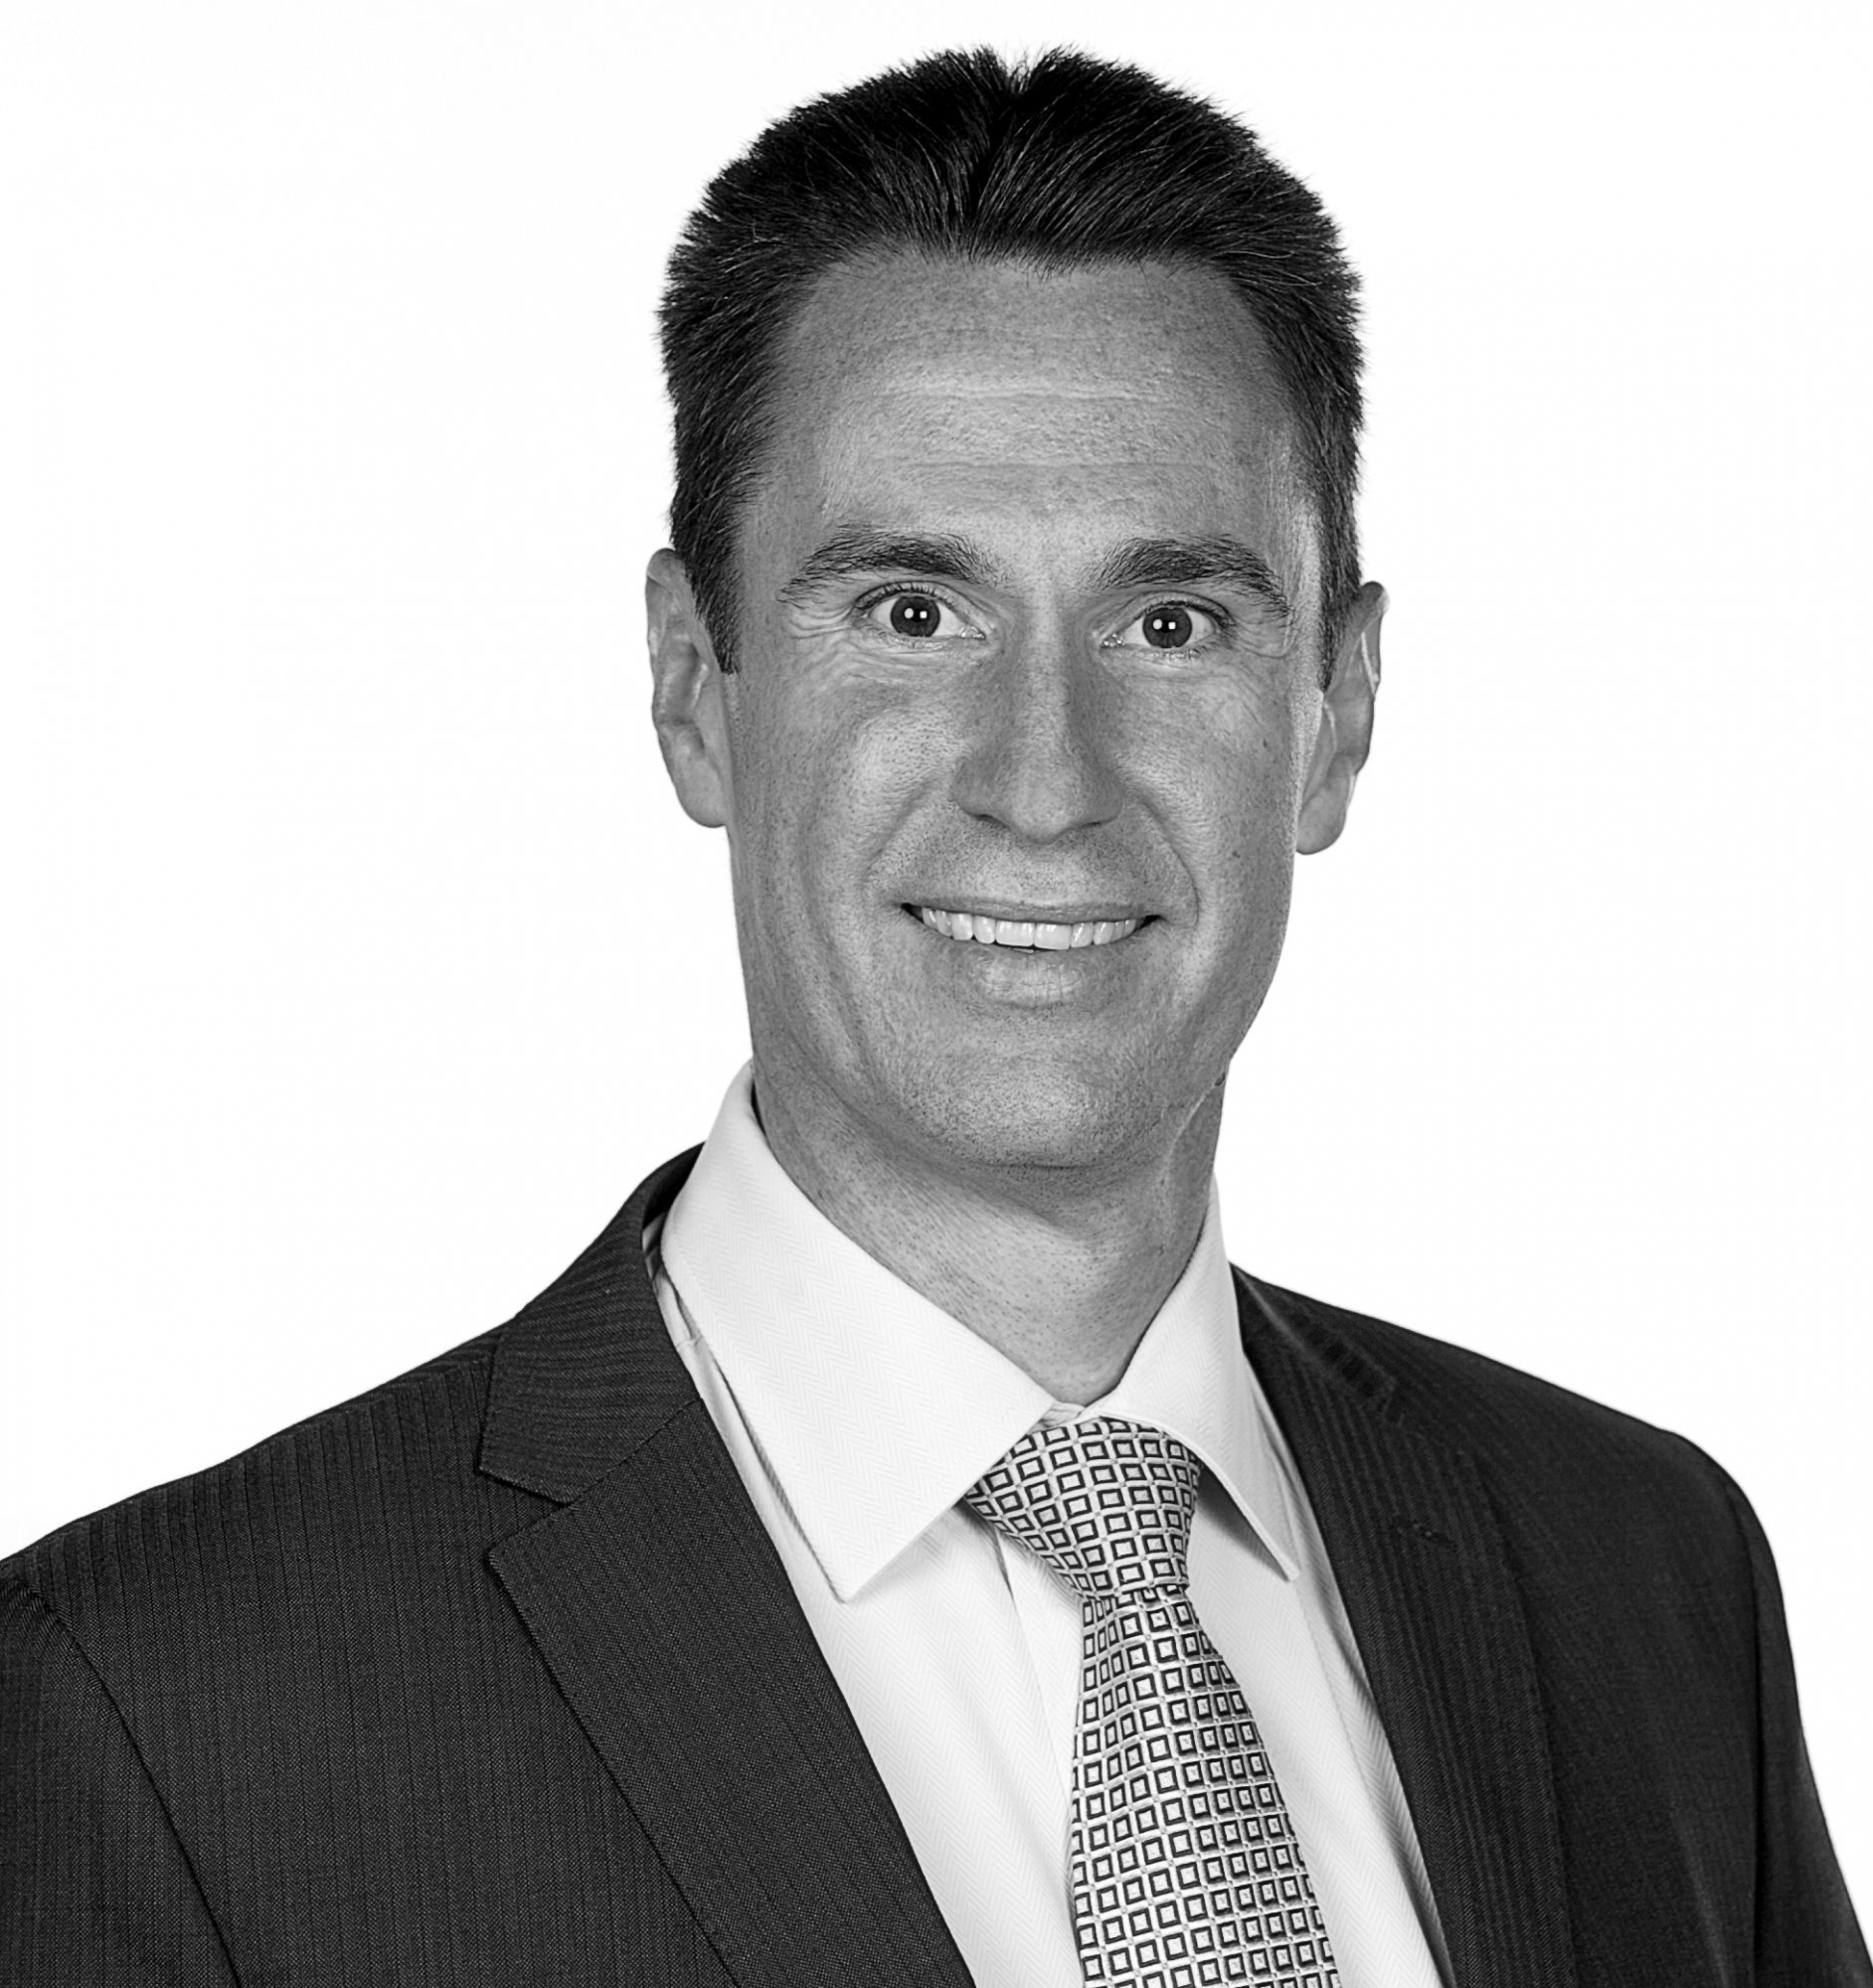 About Small Business CGT Concessions Specialists - Garth Drinkwater